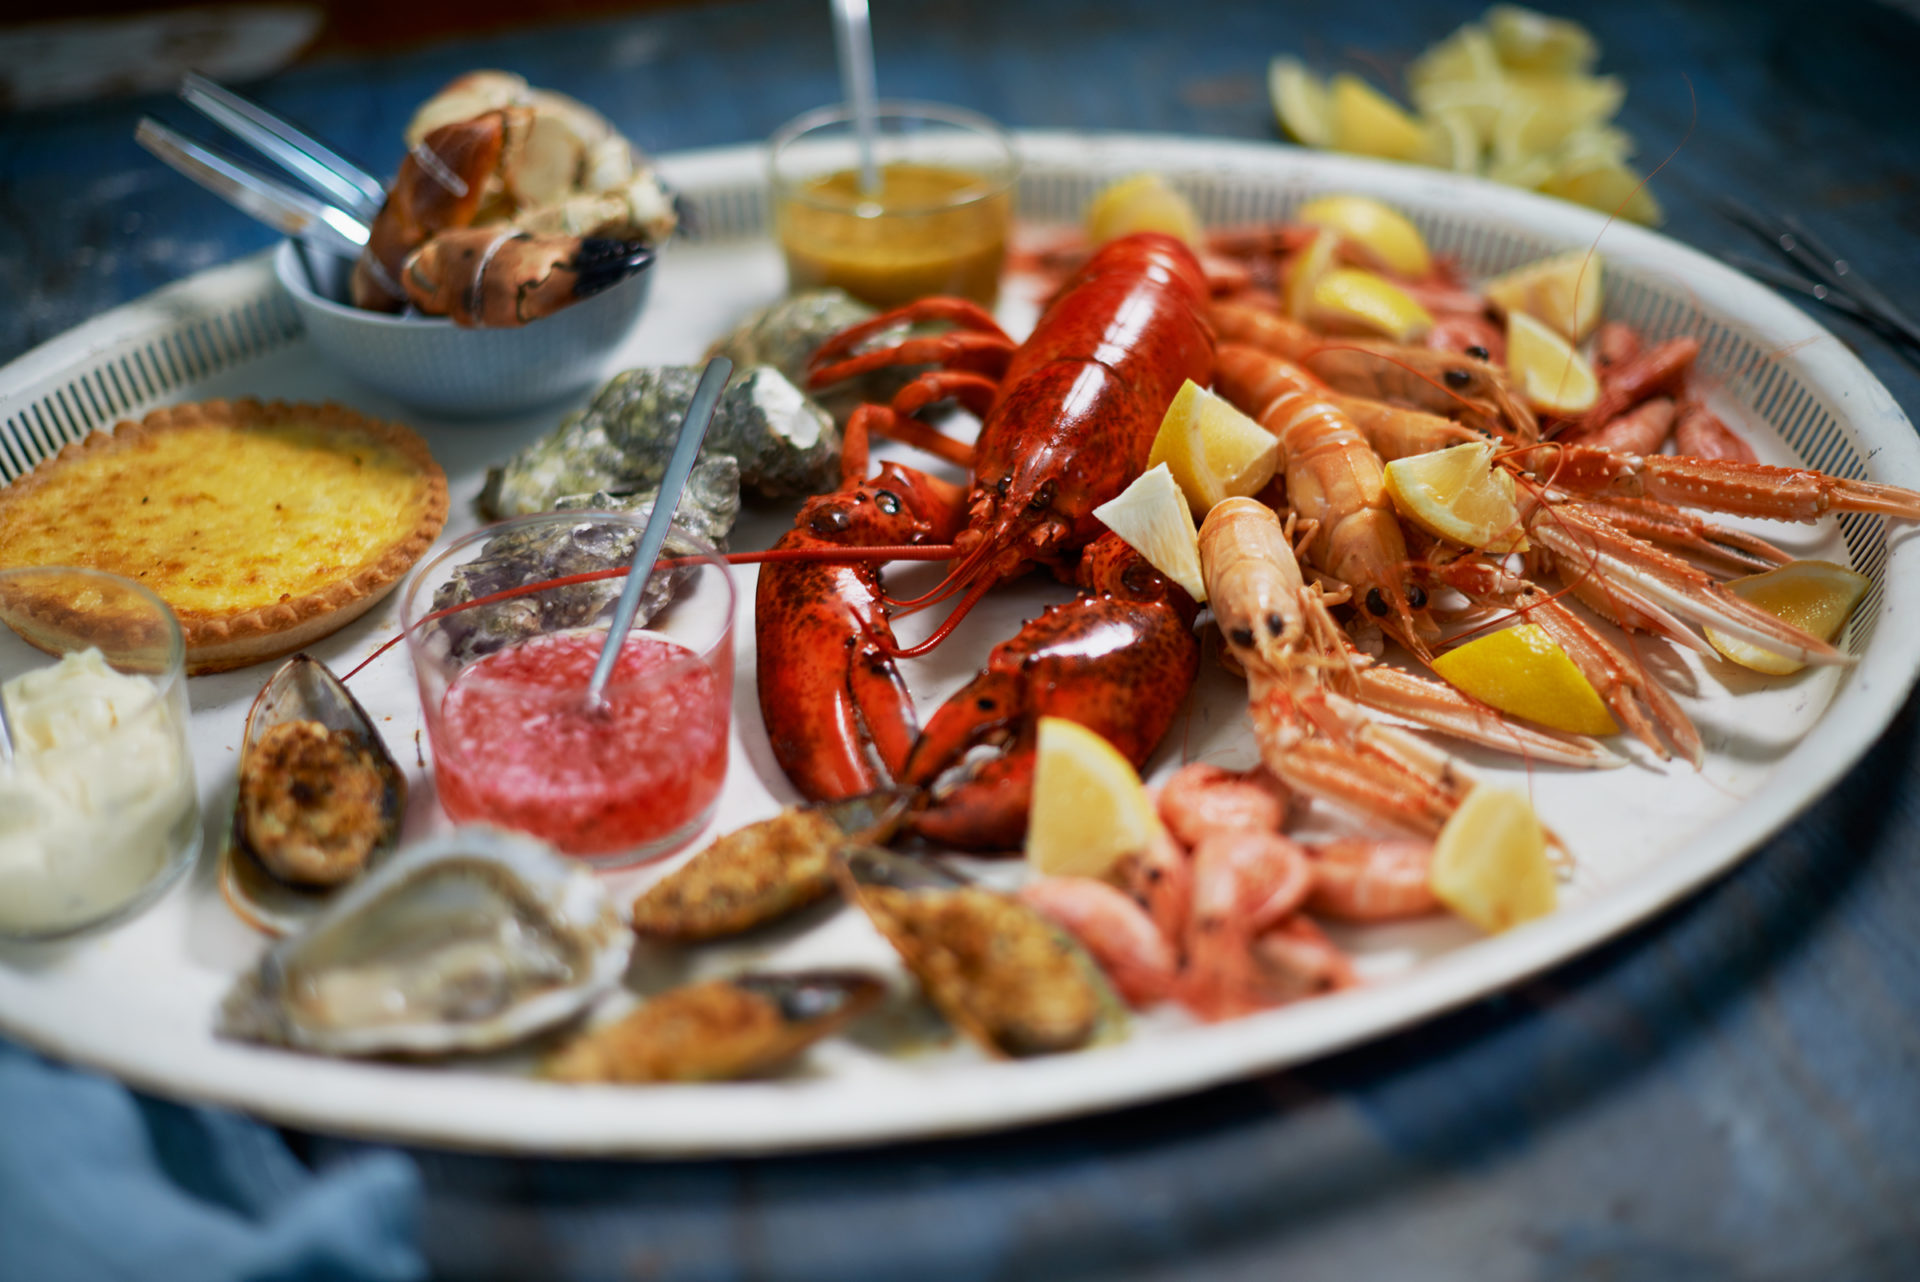 Fresh shellfish dishes to order at Sjofolkets fish restaurant in Simrishamn tips Österlen.se